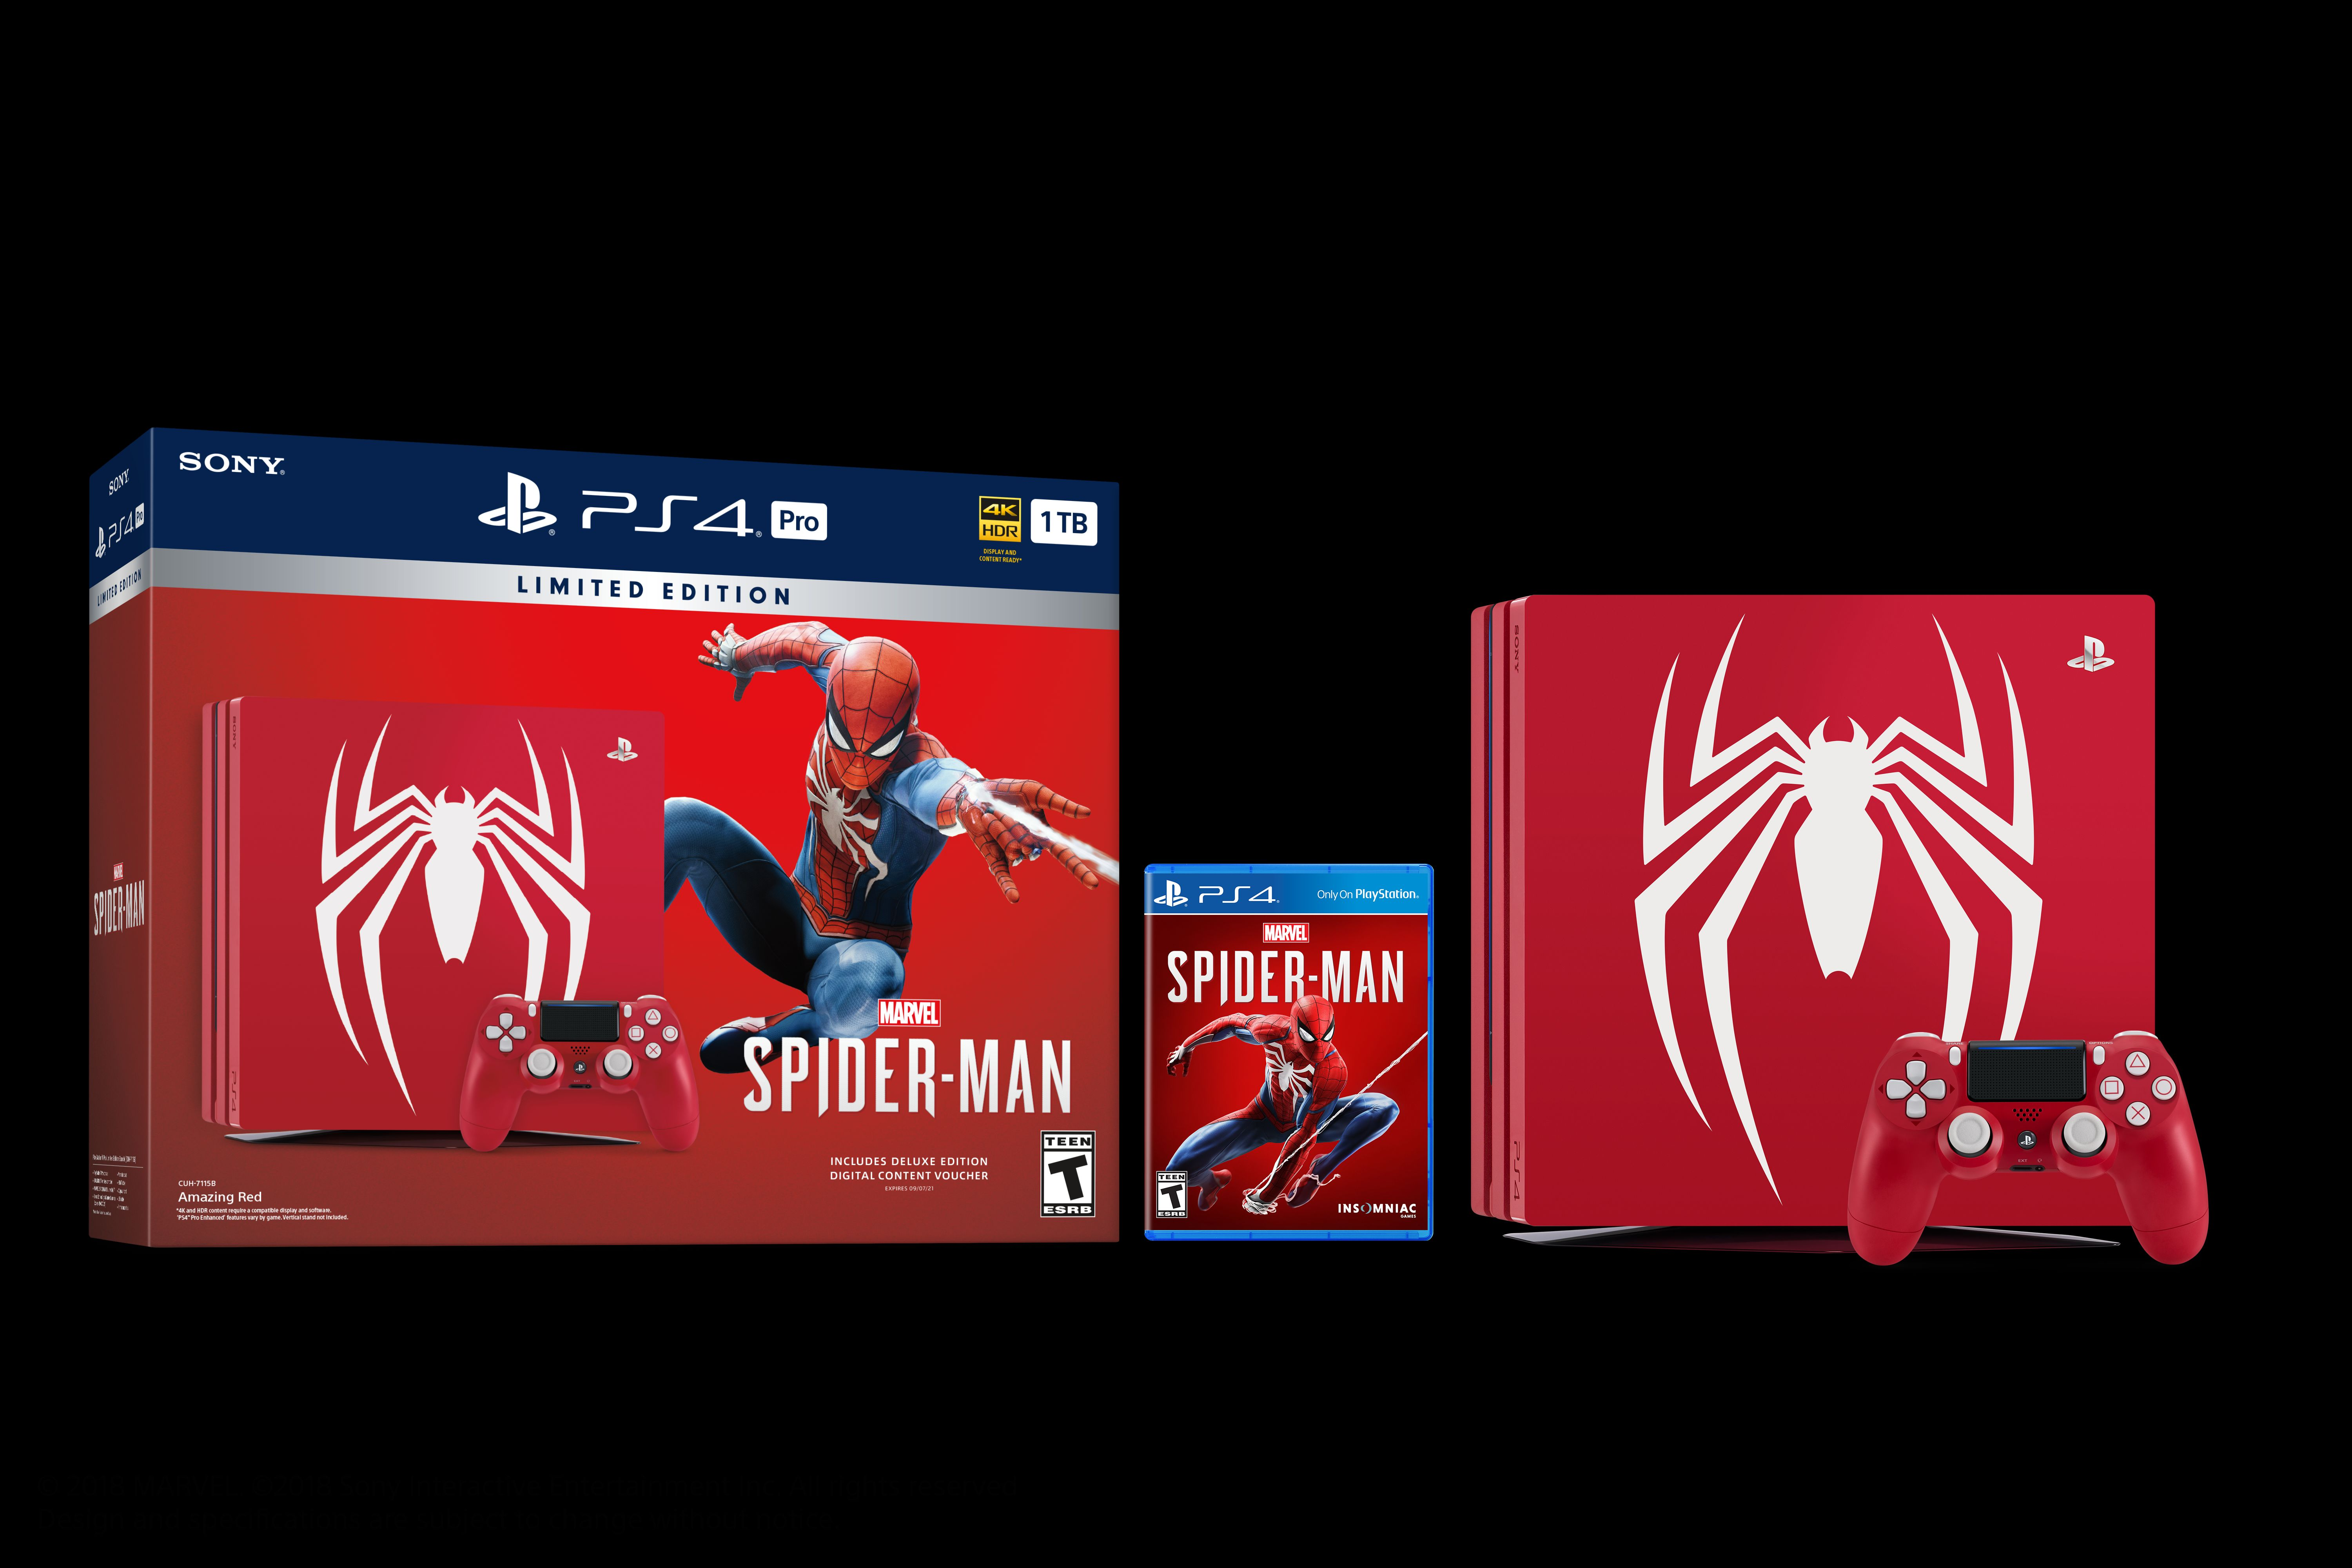 Marvel's Spider-Man Limited Edition PS4 Pro and PS4 Details